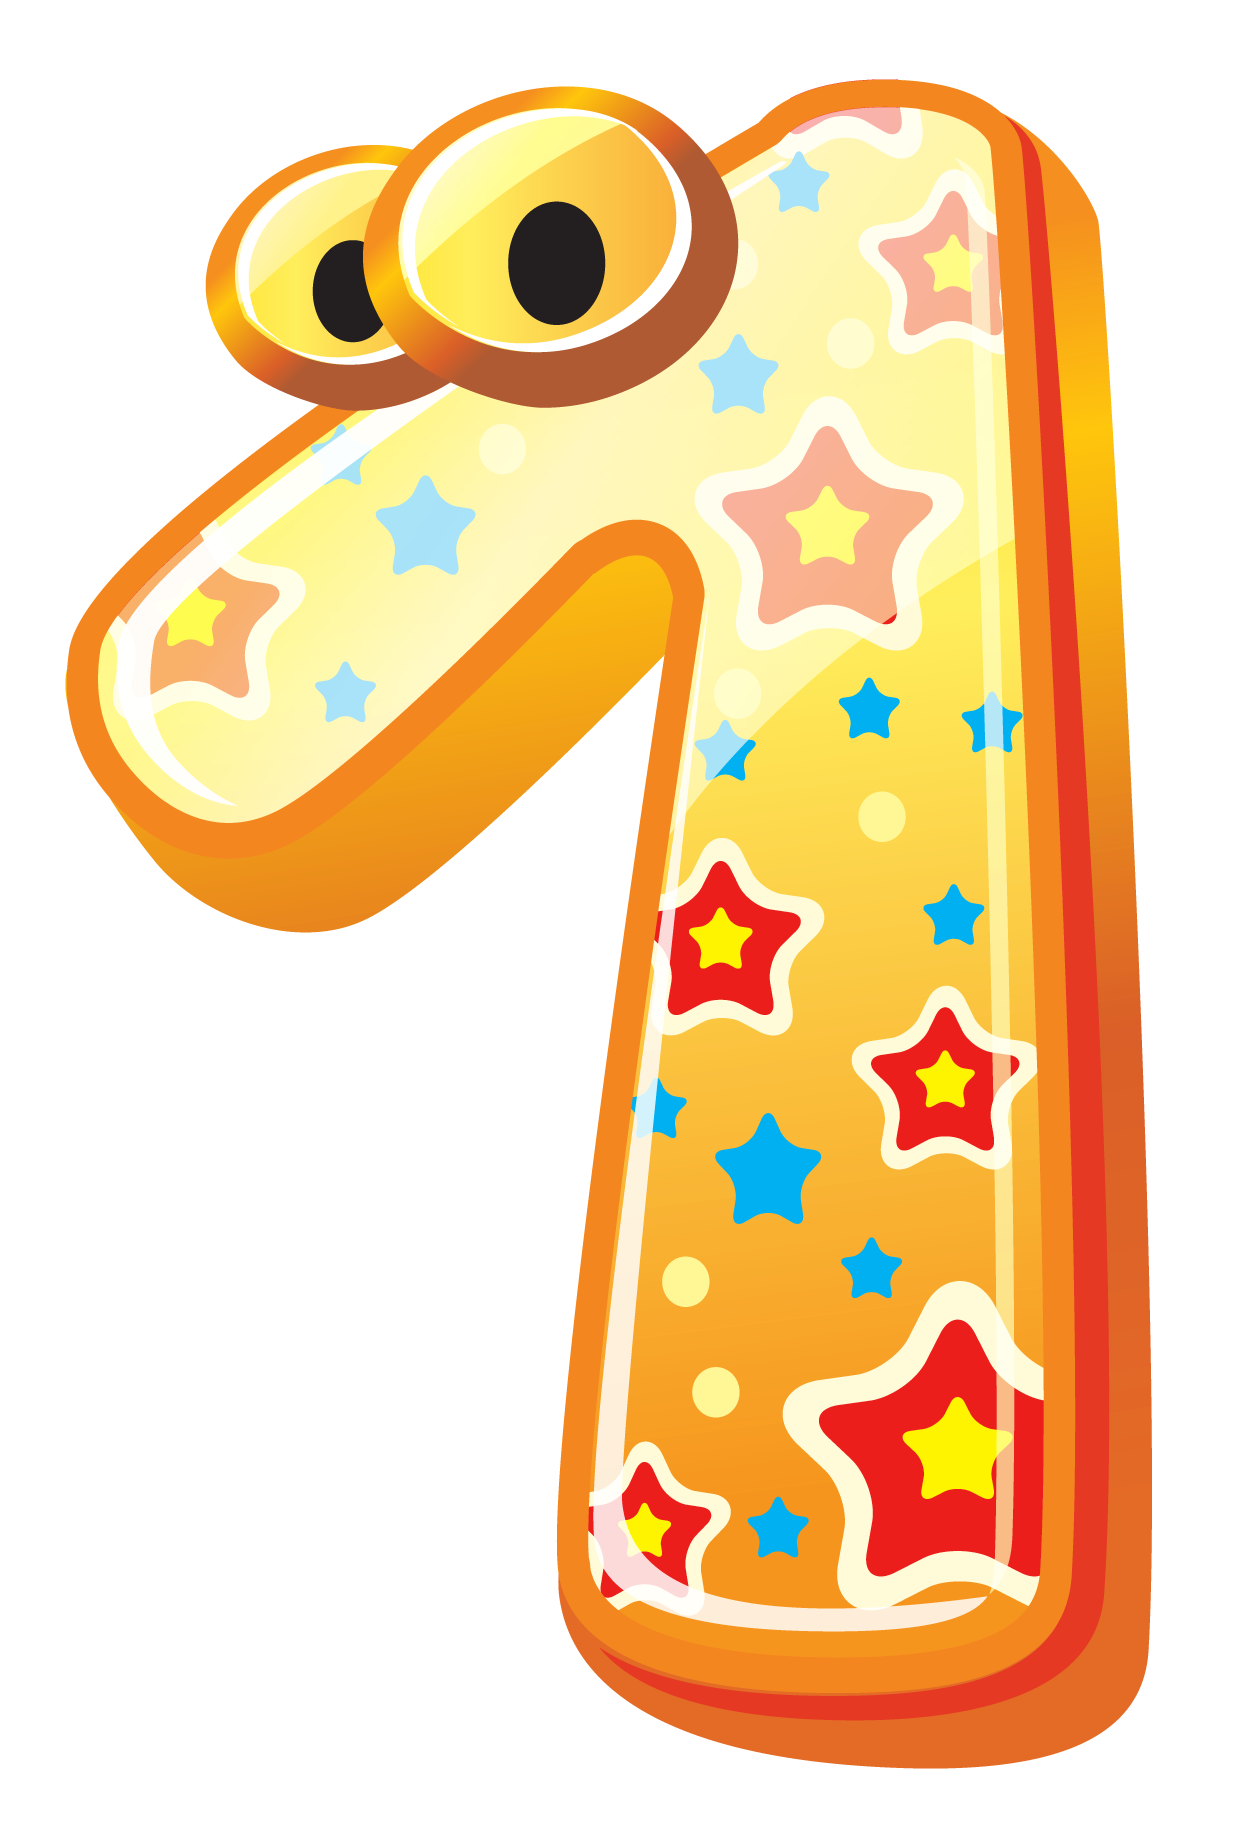 Number clipart number one Cute image image number clipart